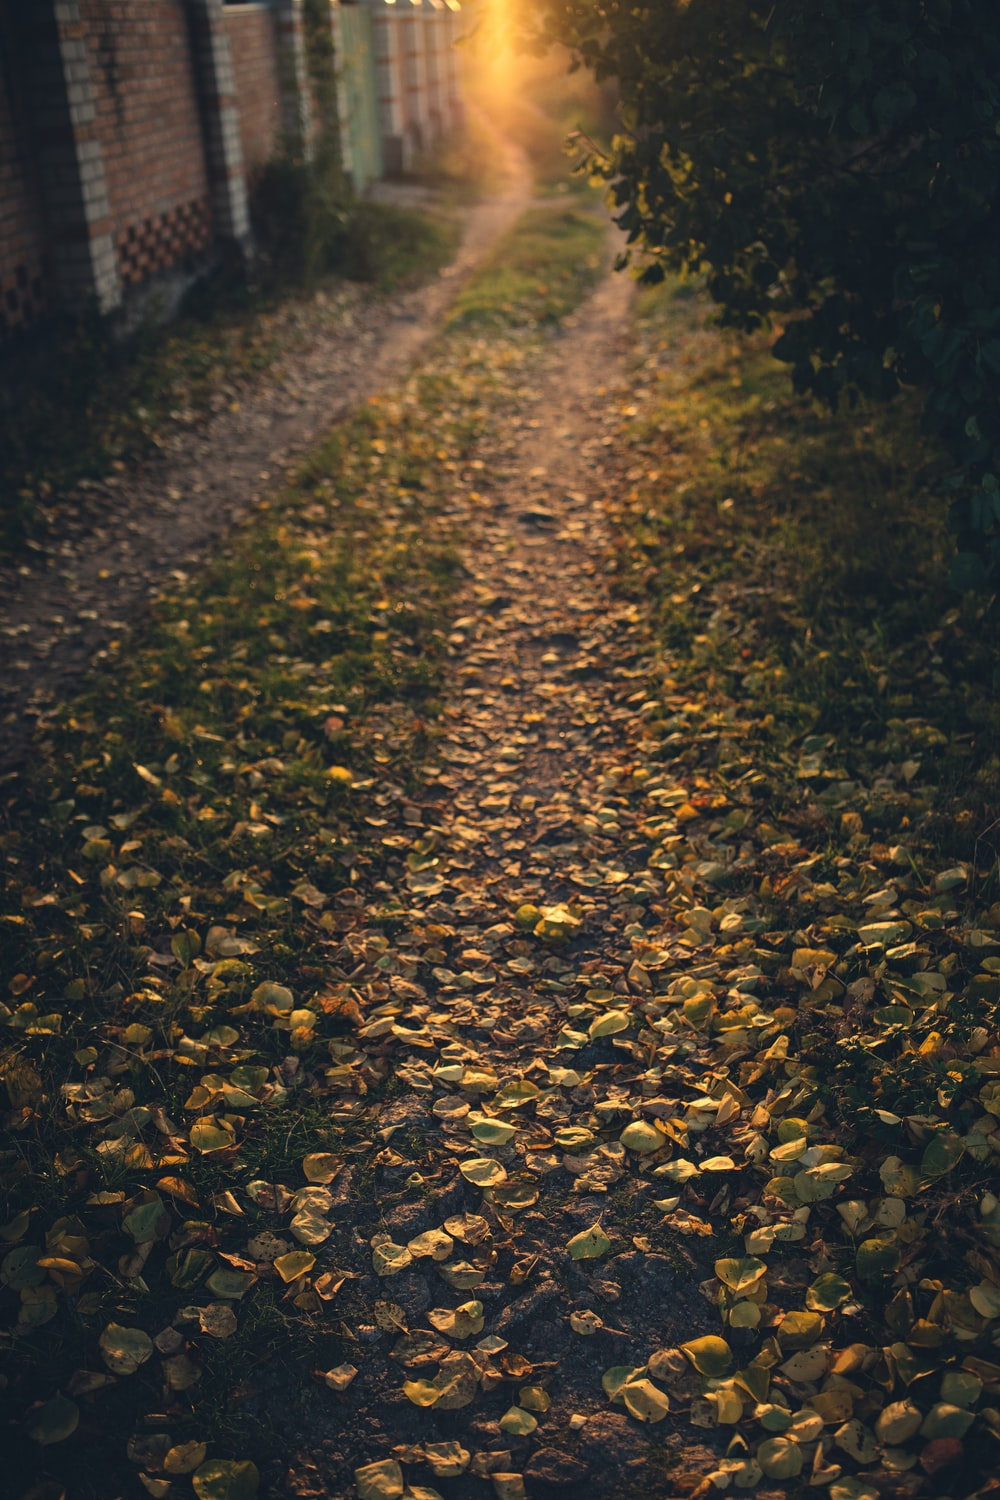 yellow leaves on the ground